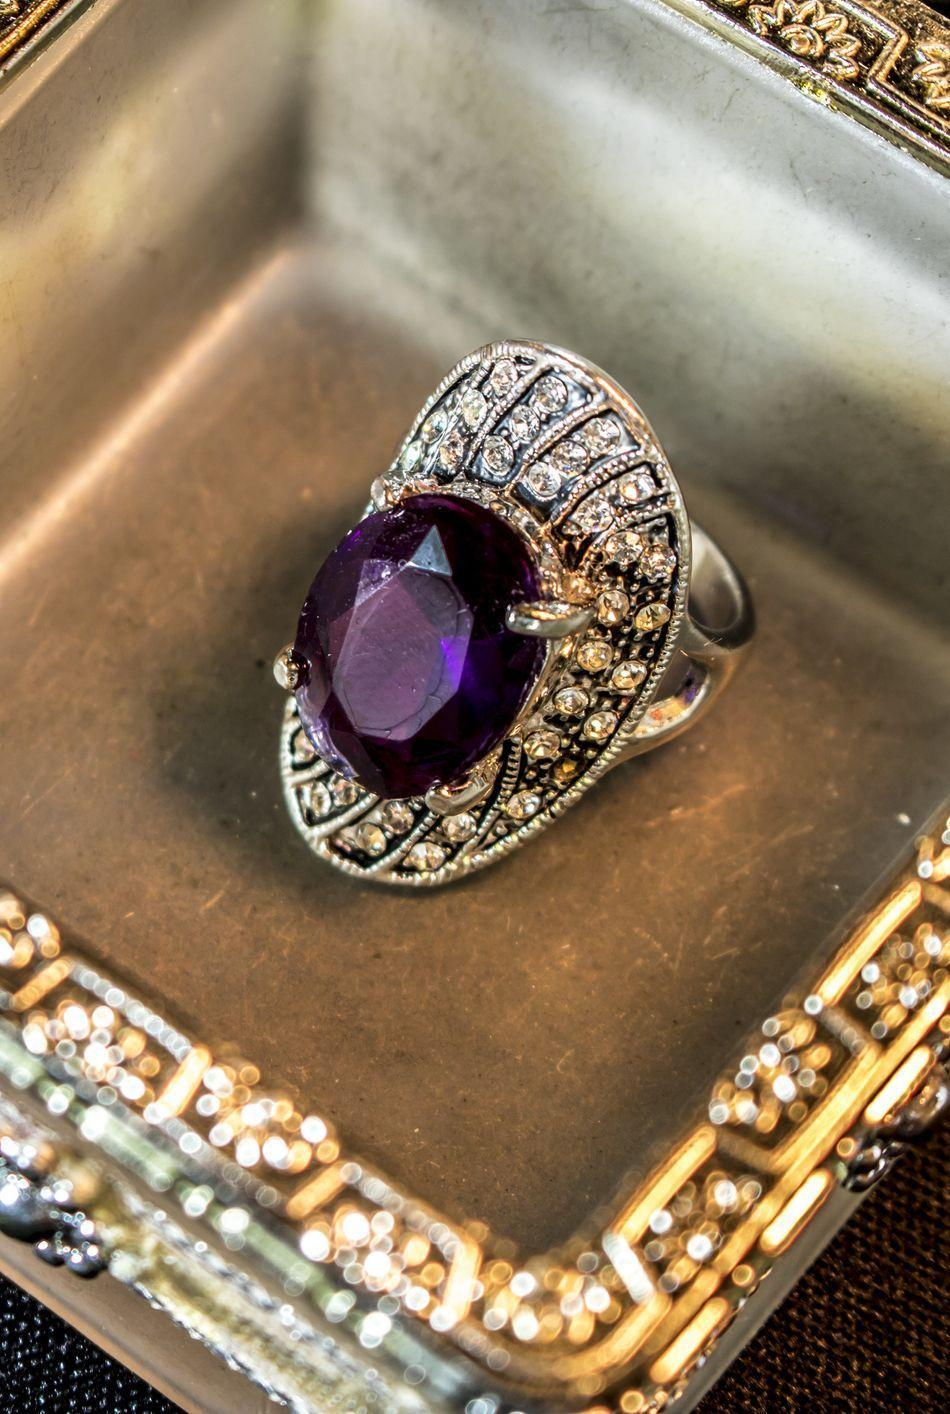 <p>Due to art deco jewelry featuring a mix of diamonds with colored gemstones, it became common for an engagement ring's center stone to be fitted with a sapphire, emerald or ruby instead of a diamond. </p>